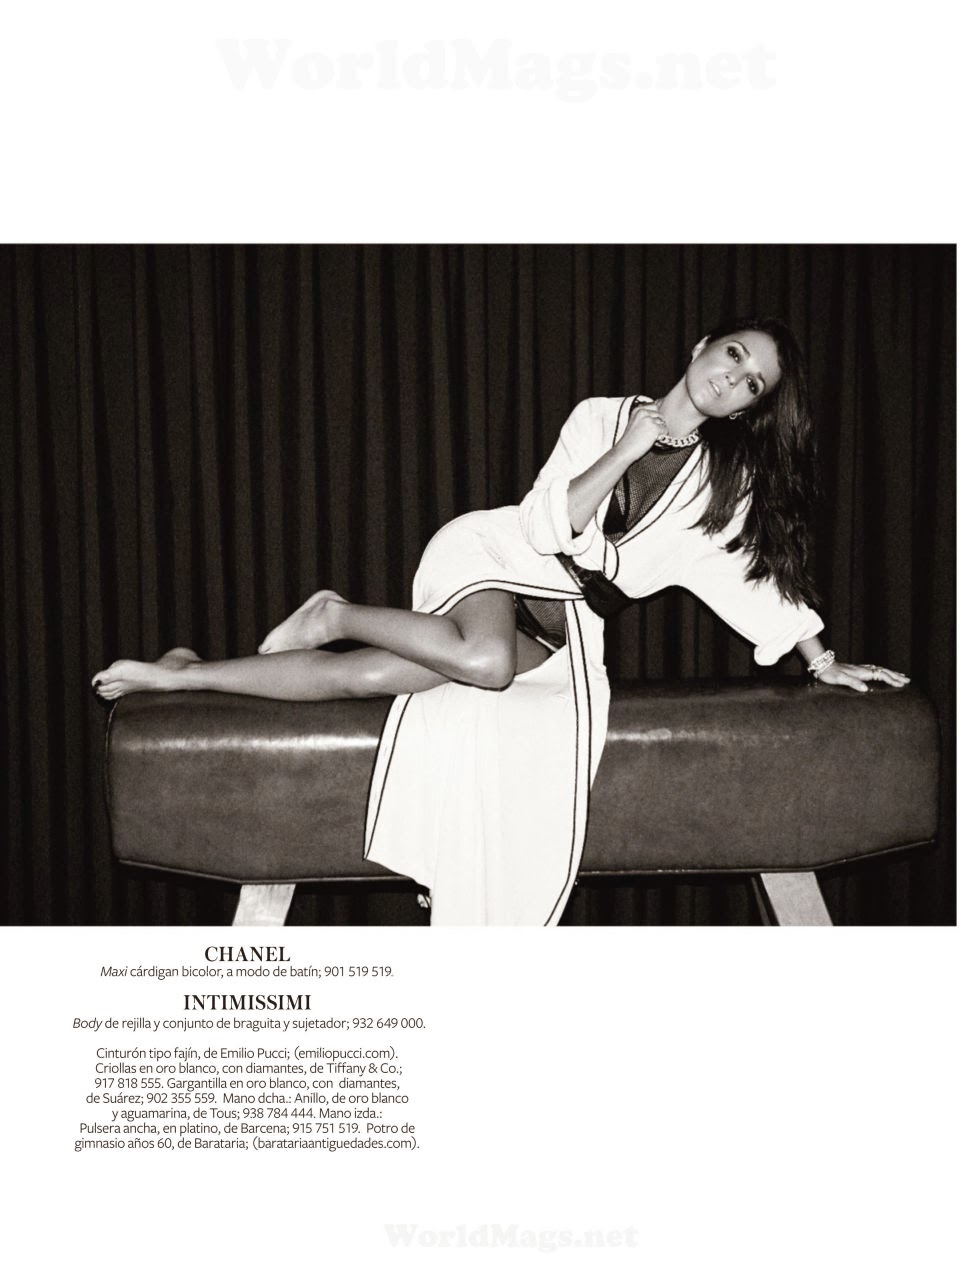 Paula Echevarria InStyle Spain Magazine Photoshoot February 2014